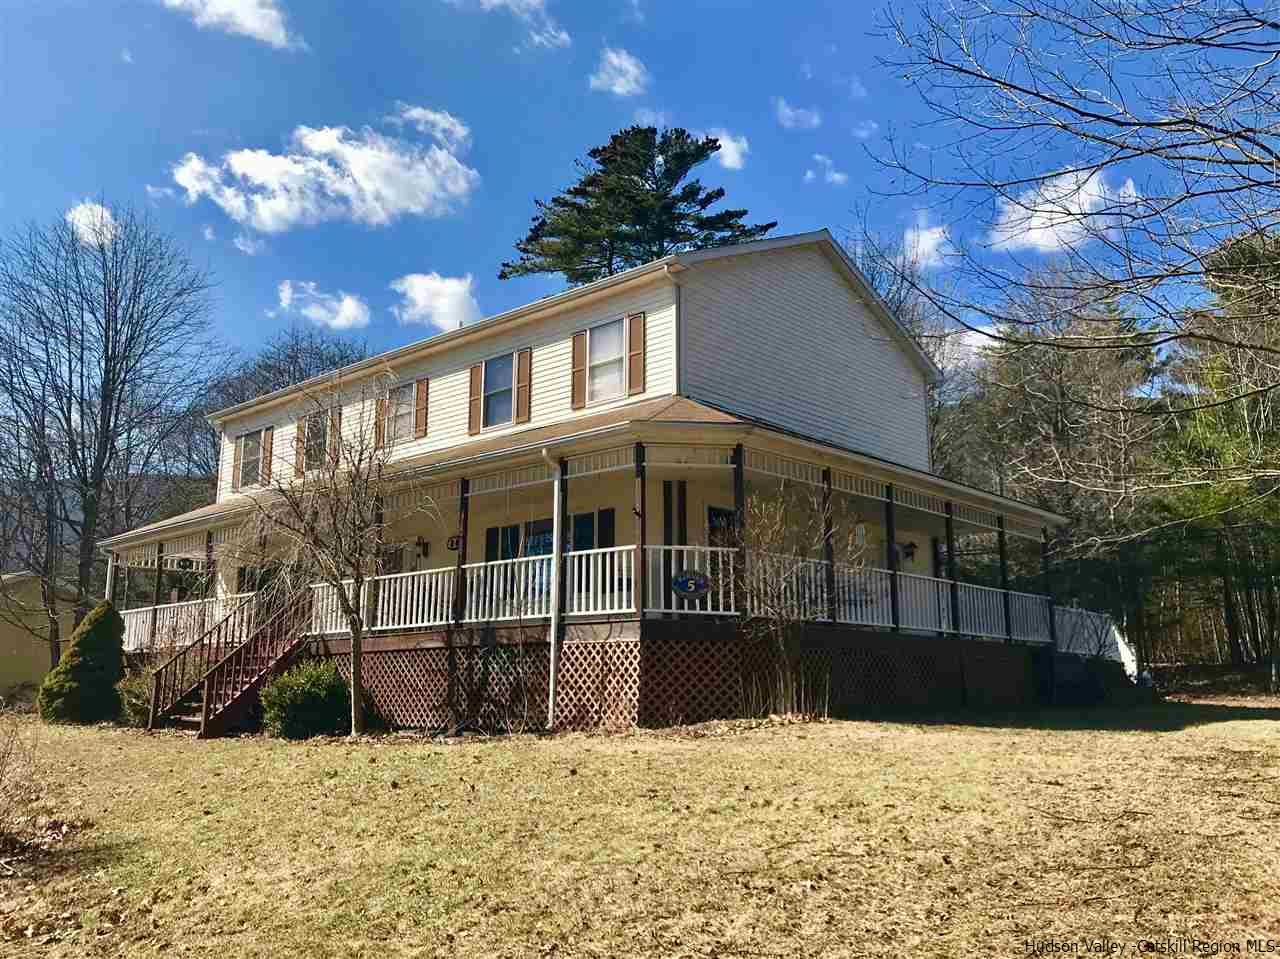 Single Family Home for Sale at 5 Club House Road 5 Club House Road Saugerties, New York 12477 United States